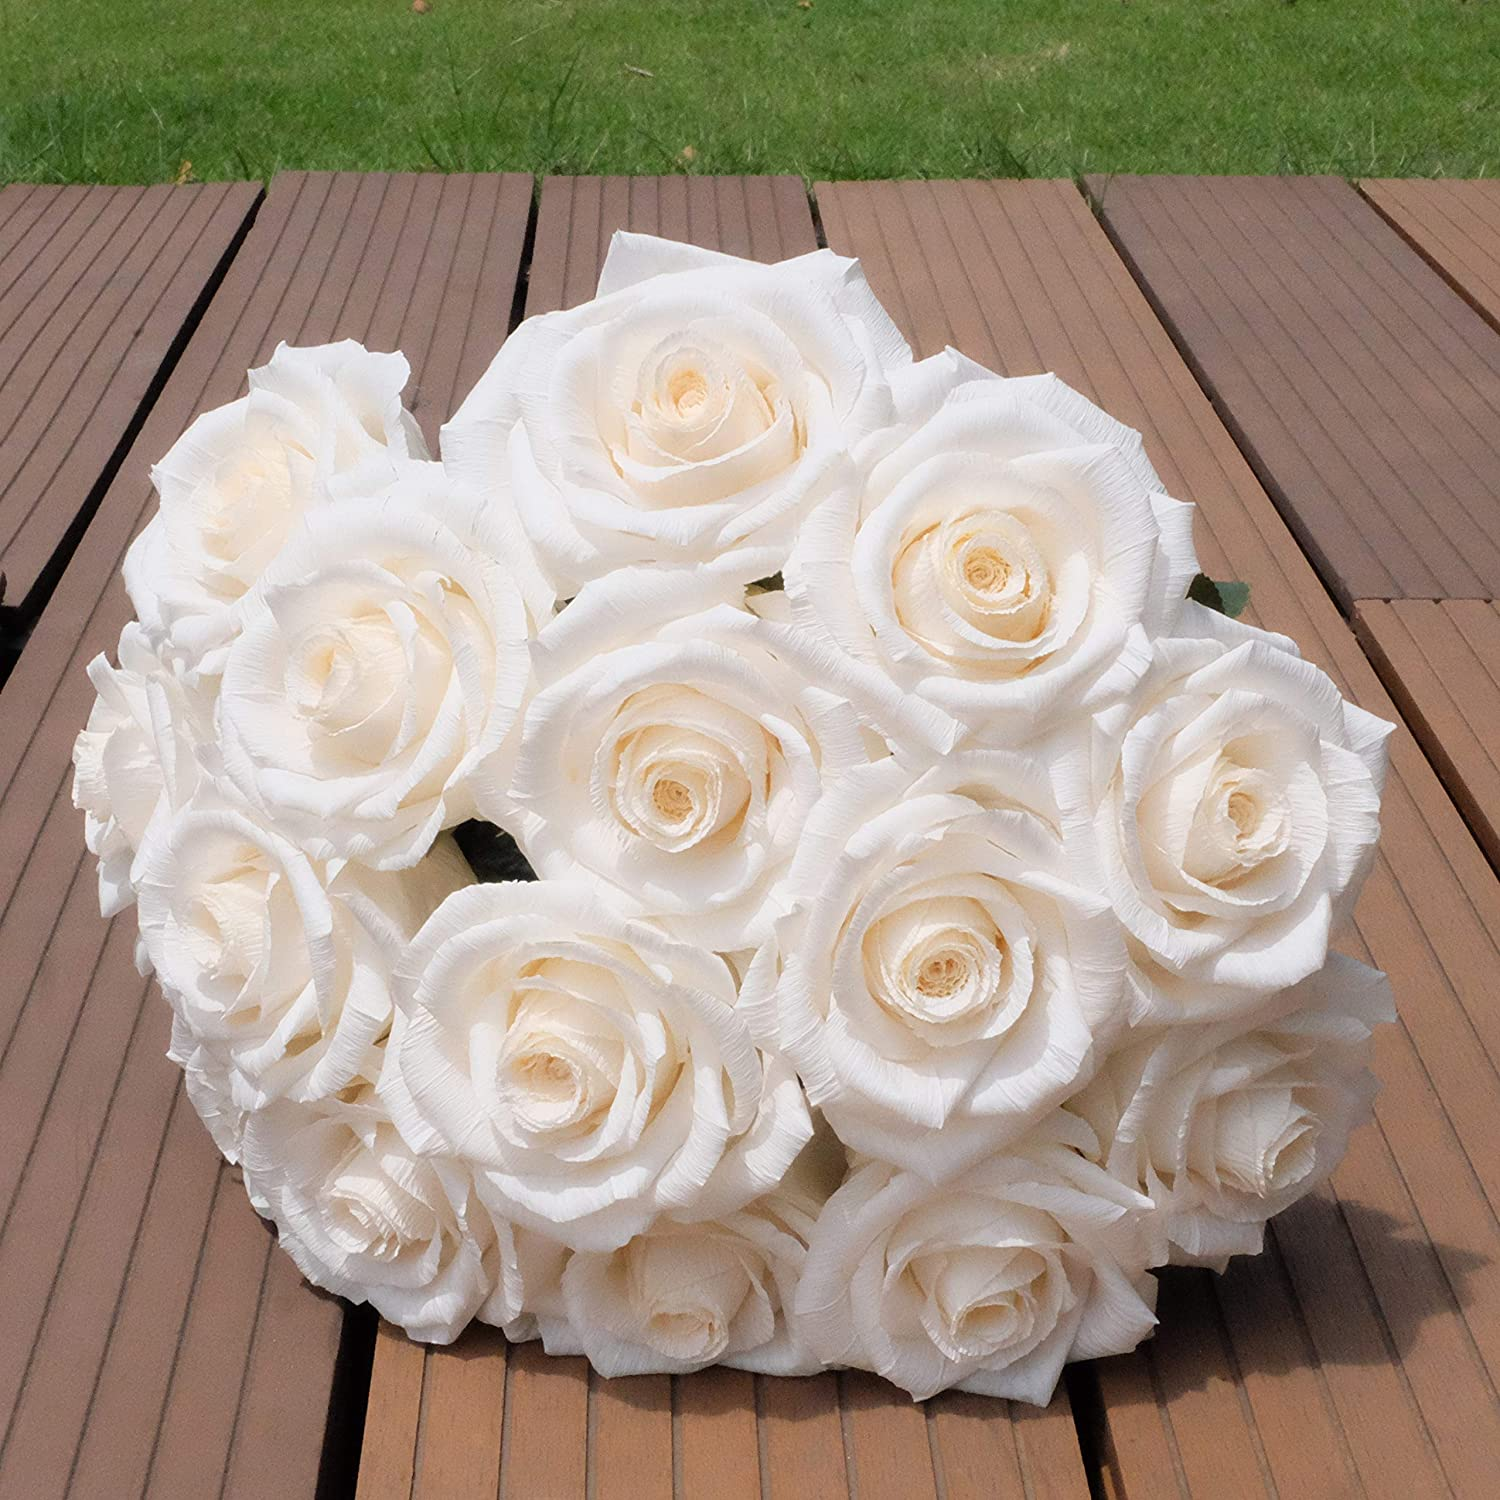 Gorgeous White Paper Rose Handmade Art Crepe Paper Flower Realistic and Unique Ideal for Home Decor Wedding Bridal Bridesmaid Bouquet, Single Long Stem